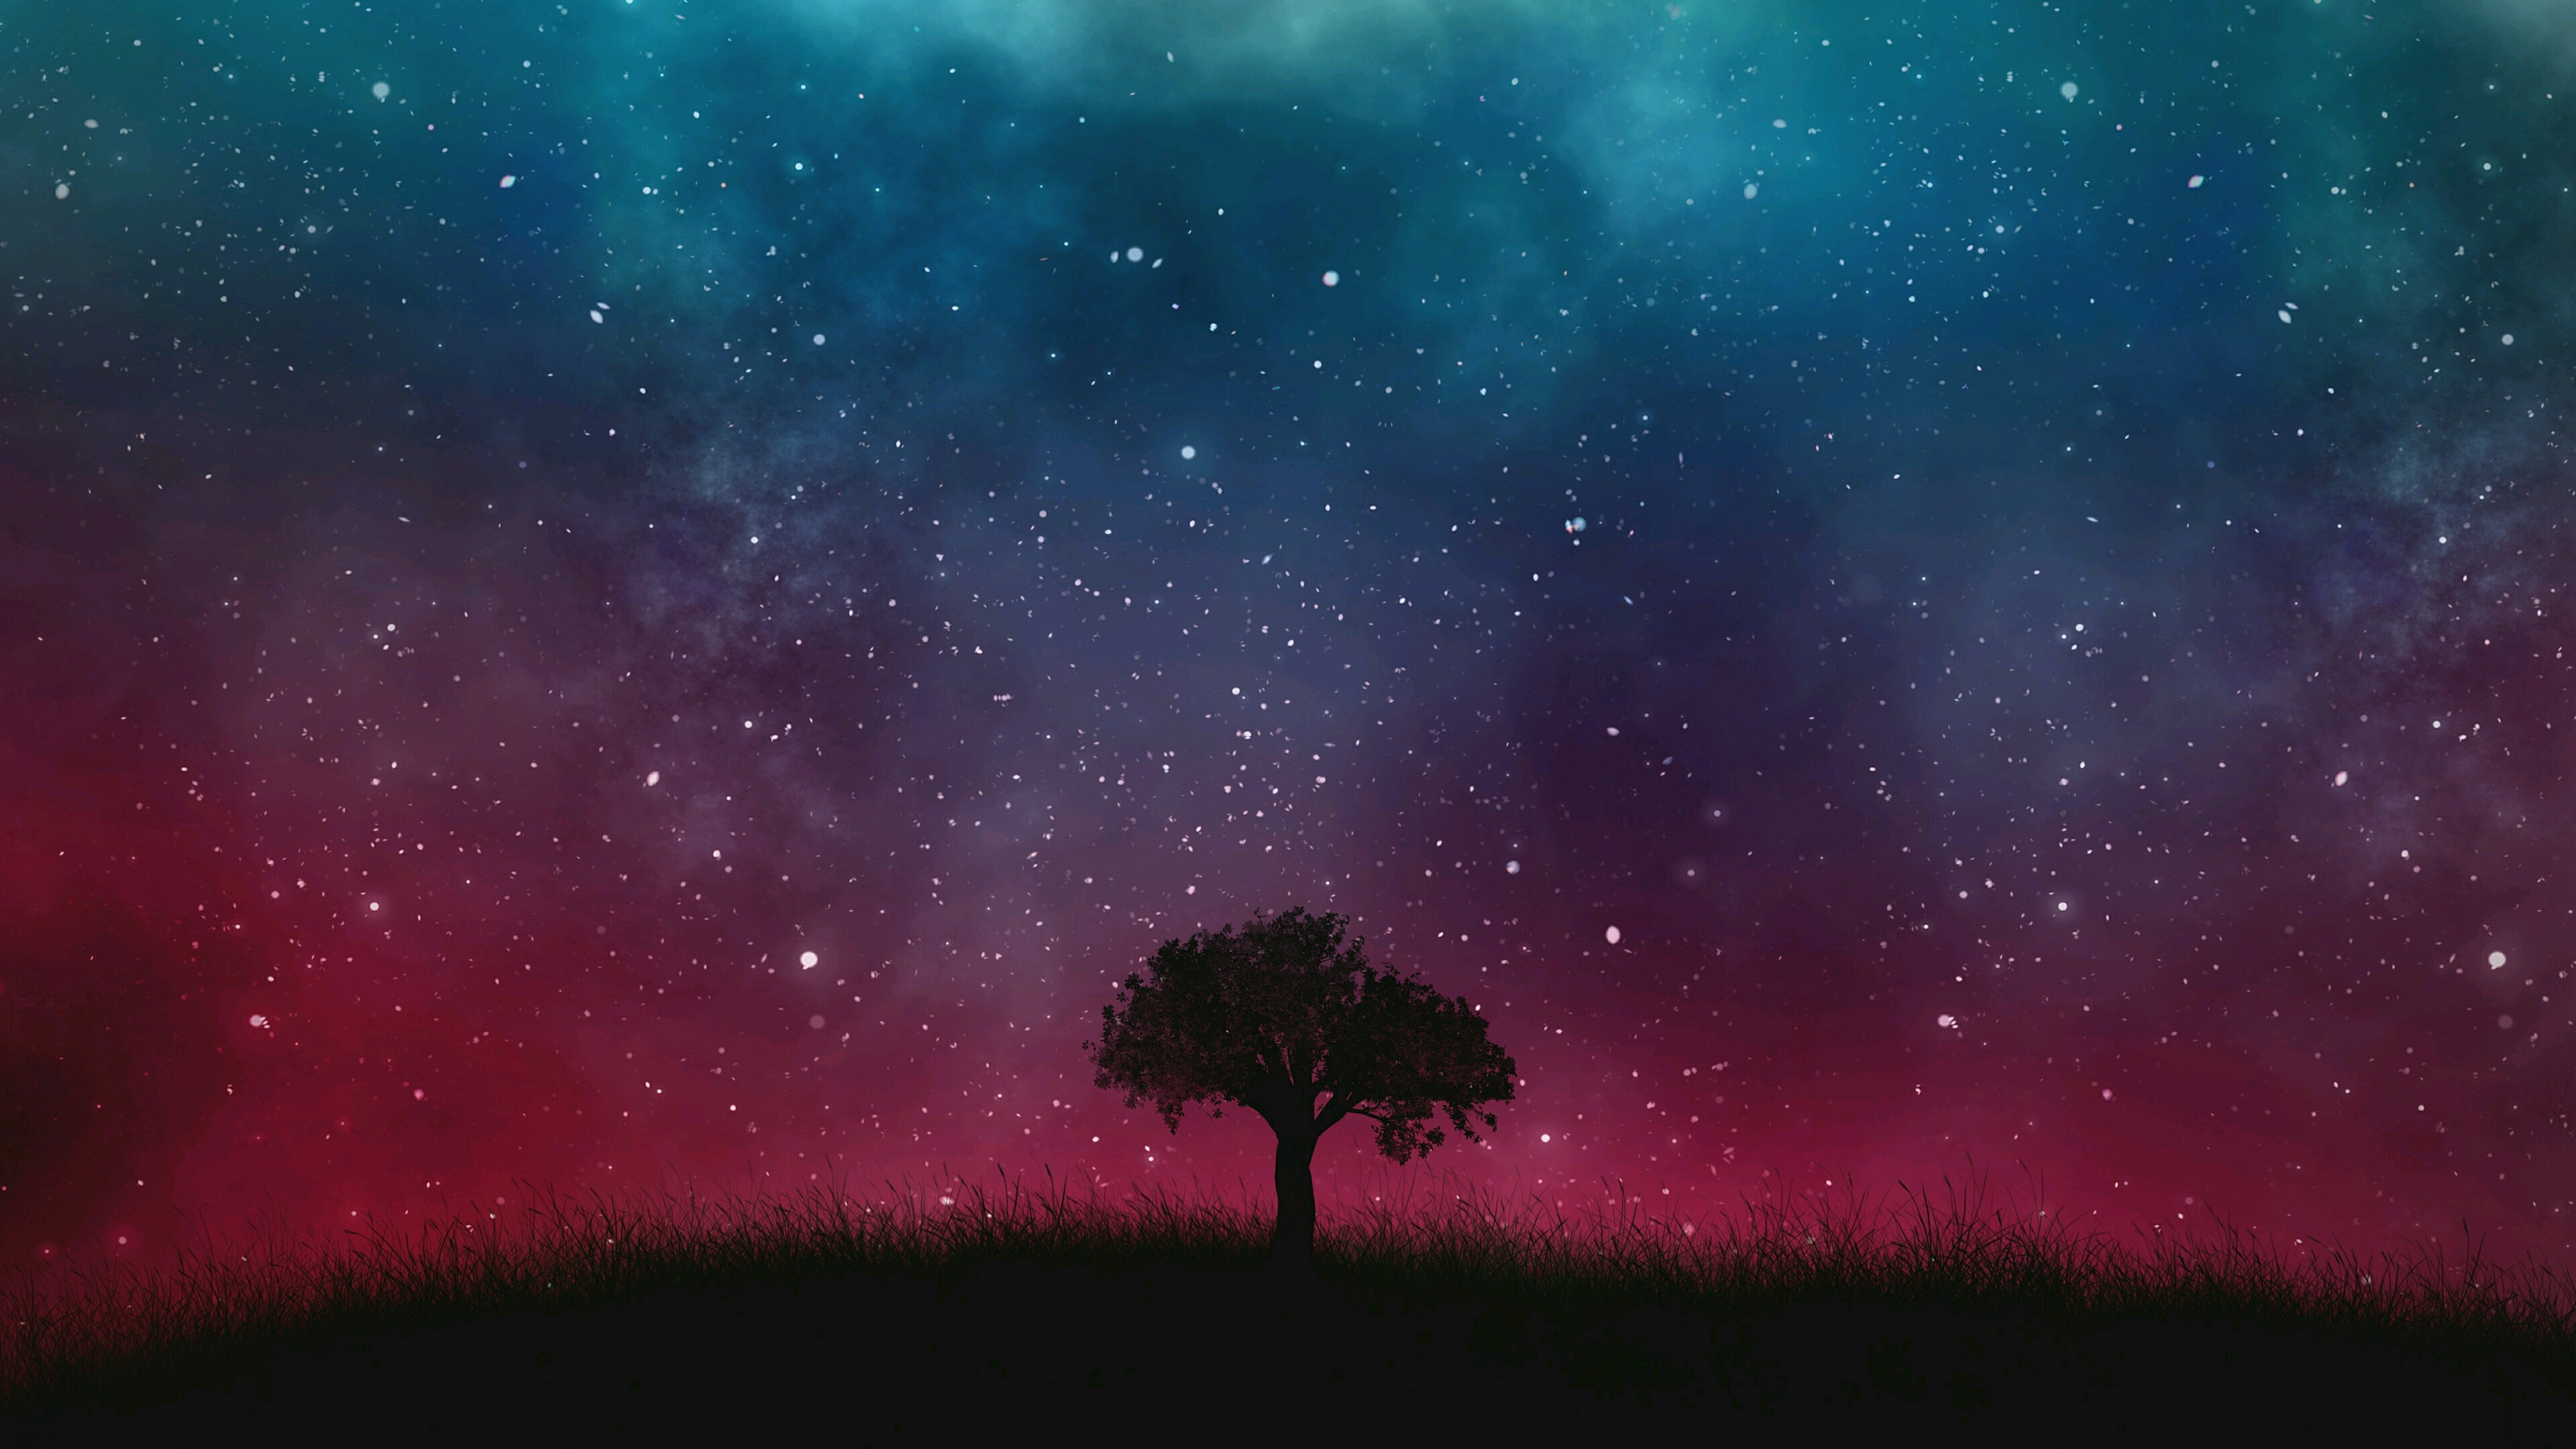 Res: 3840x2160, Lone Tree Under The Starry Sky - Fantasy Art Wallpaper | Wallpaper Studio  10 | Tens of thousands HD and UltraHD wallpapers for Android, Windows and  Xbox